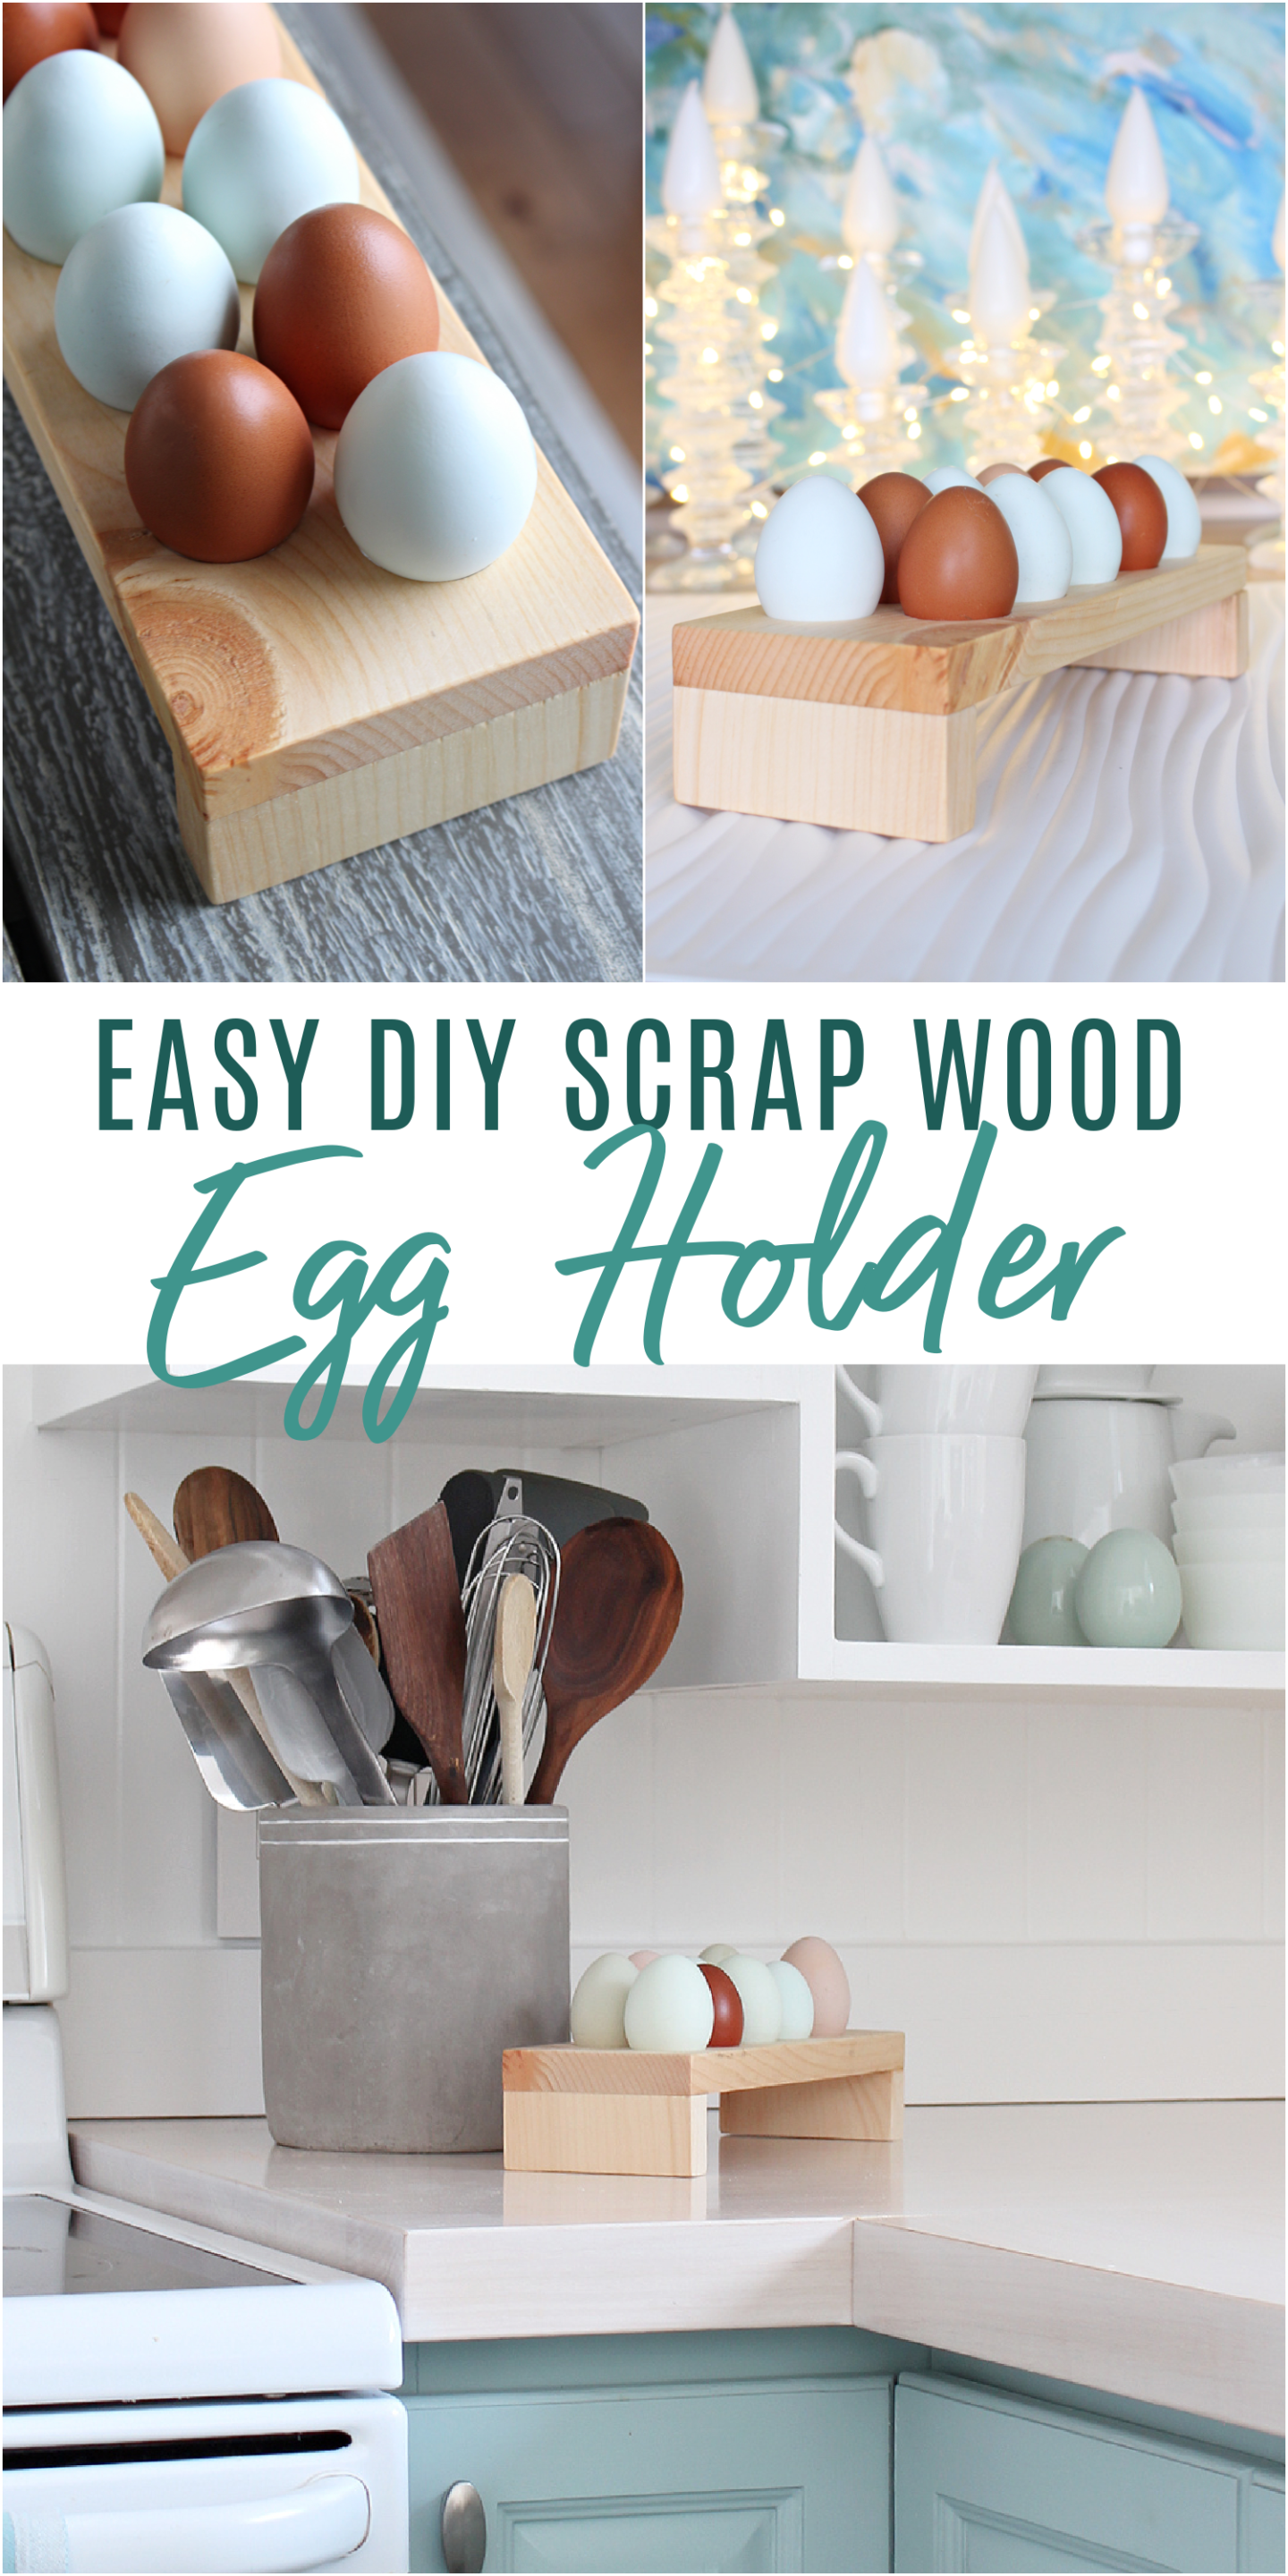 Easy DIY Scrap Wood Egg Holder